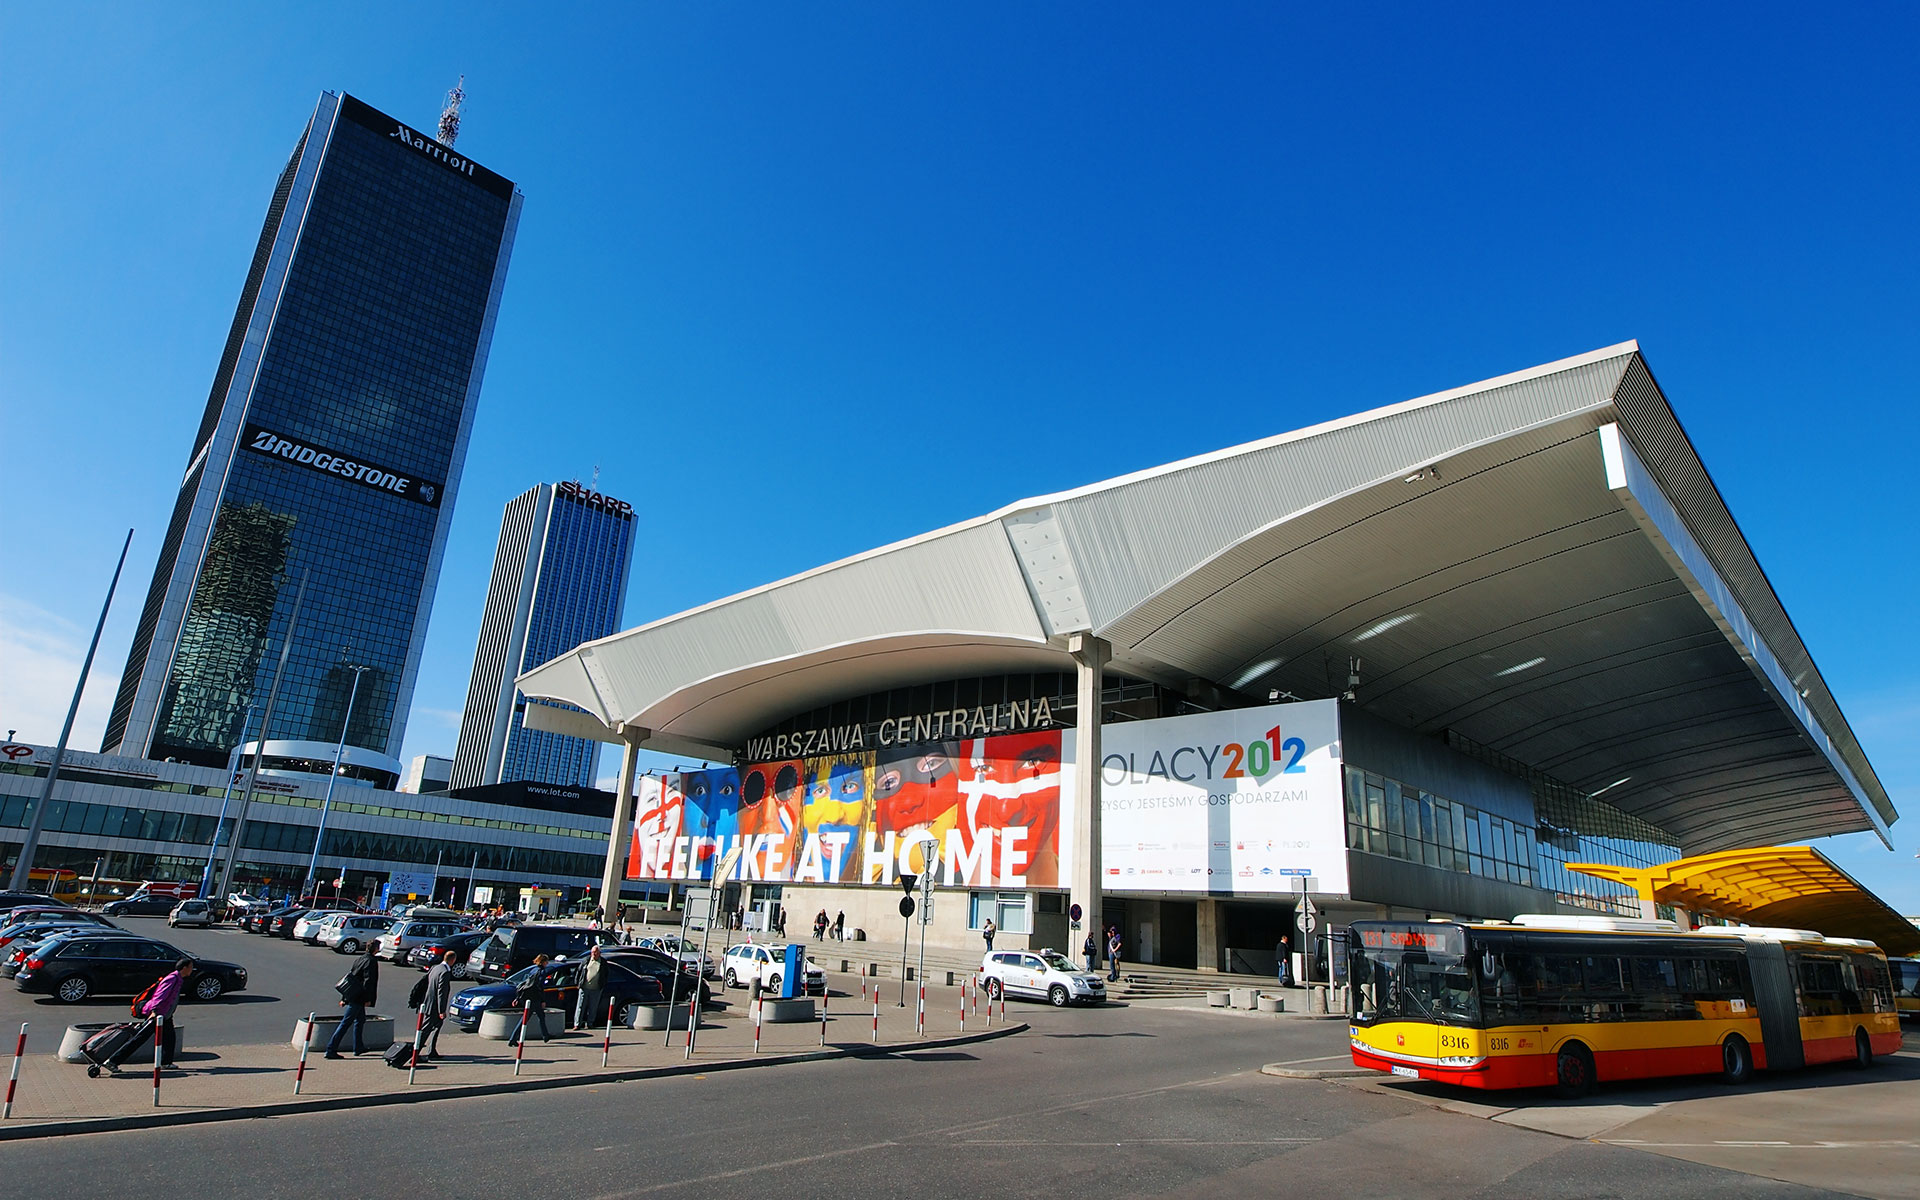 Warsaw Centralna station - here during the UEFA European Championships 2012 (photo © Karol Kozlowski).